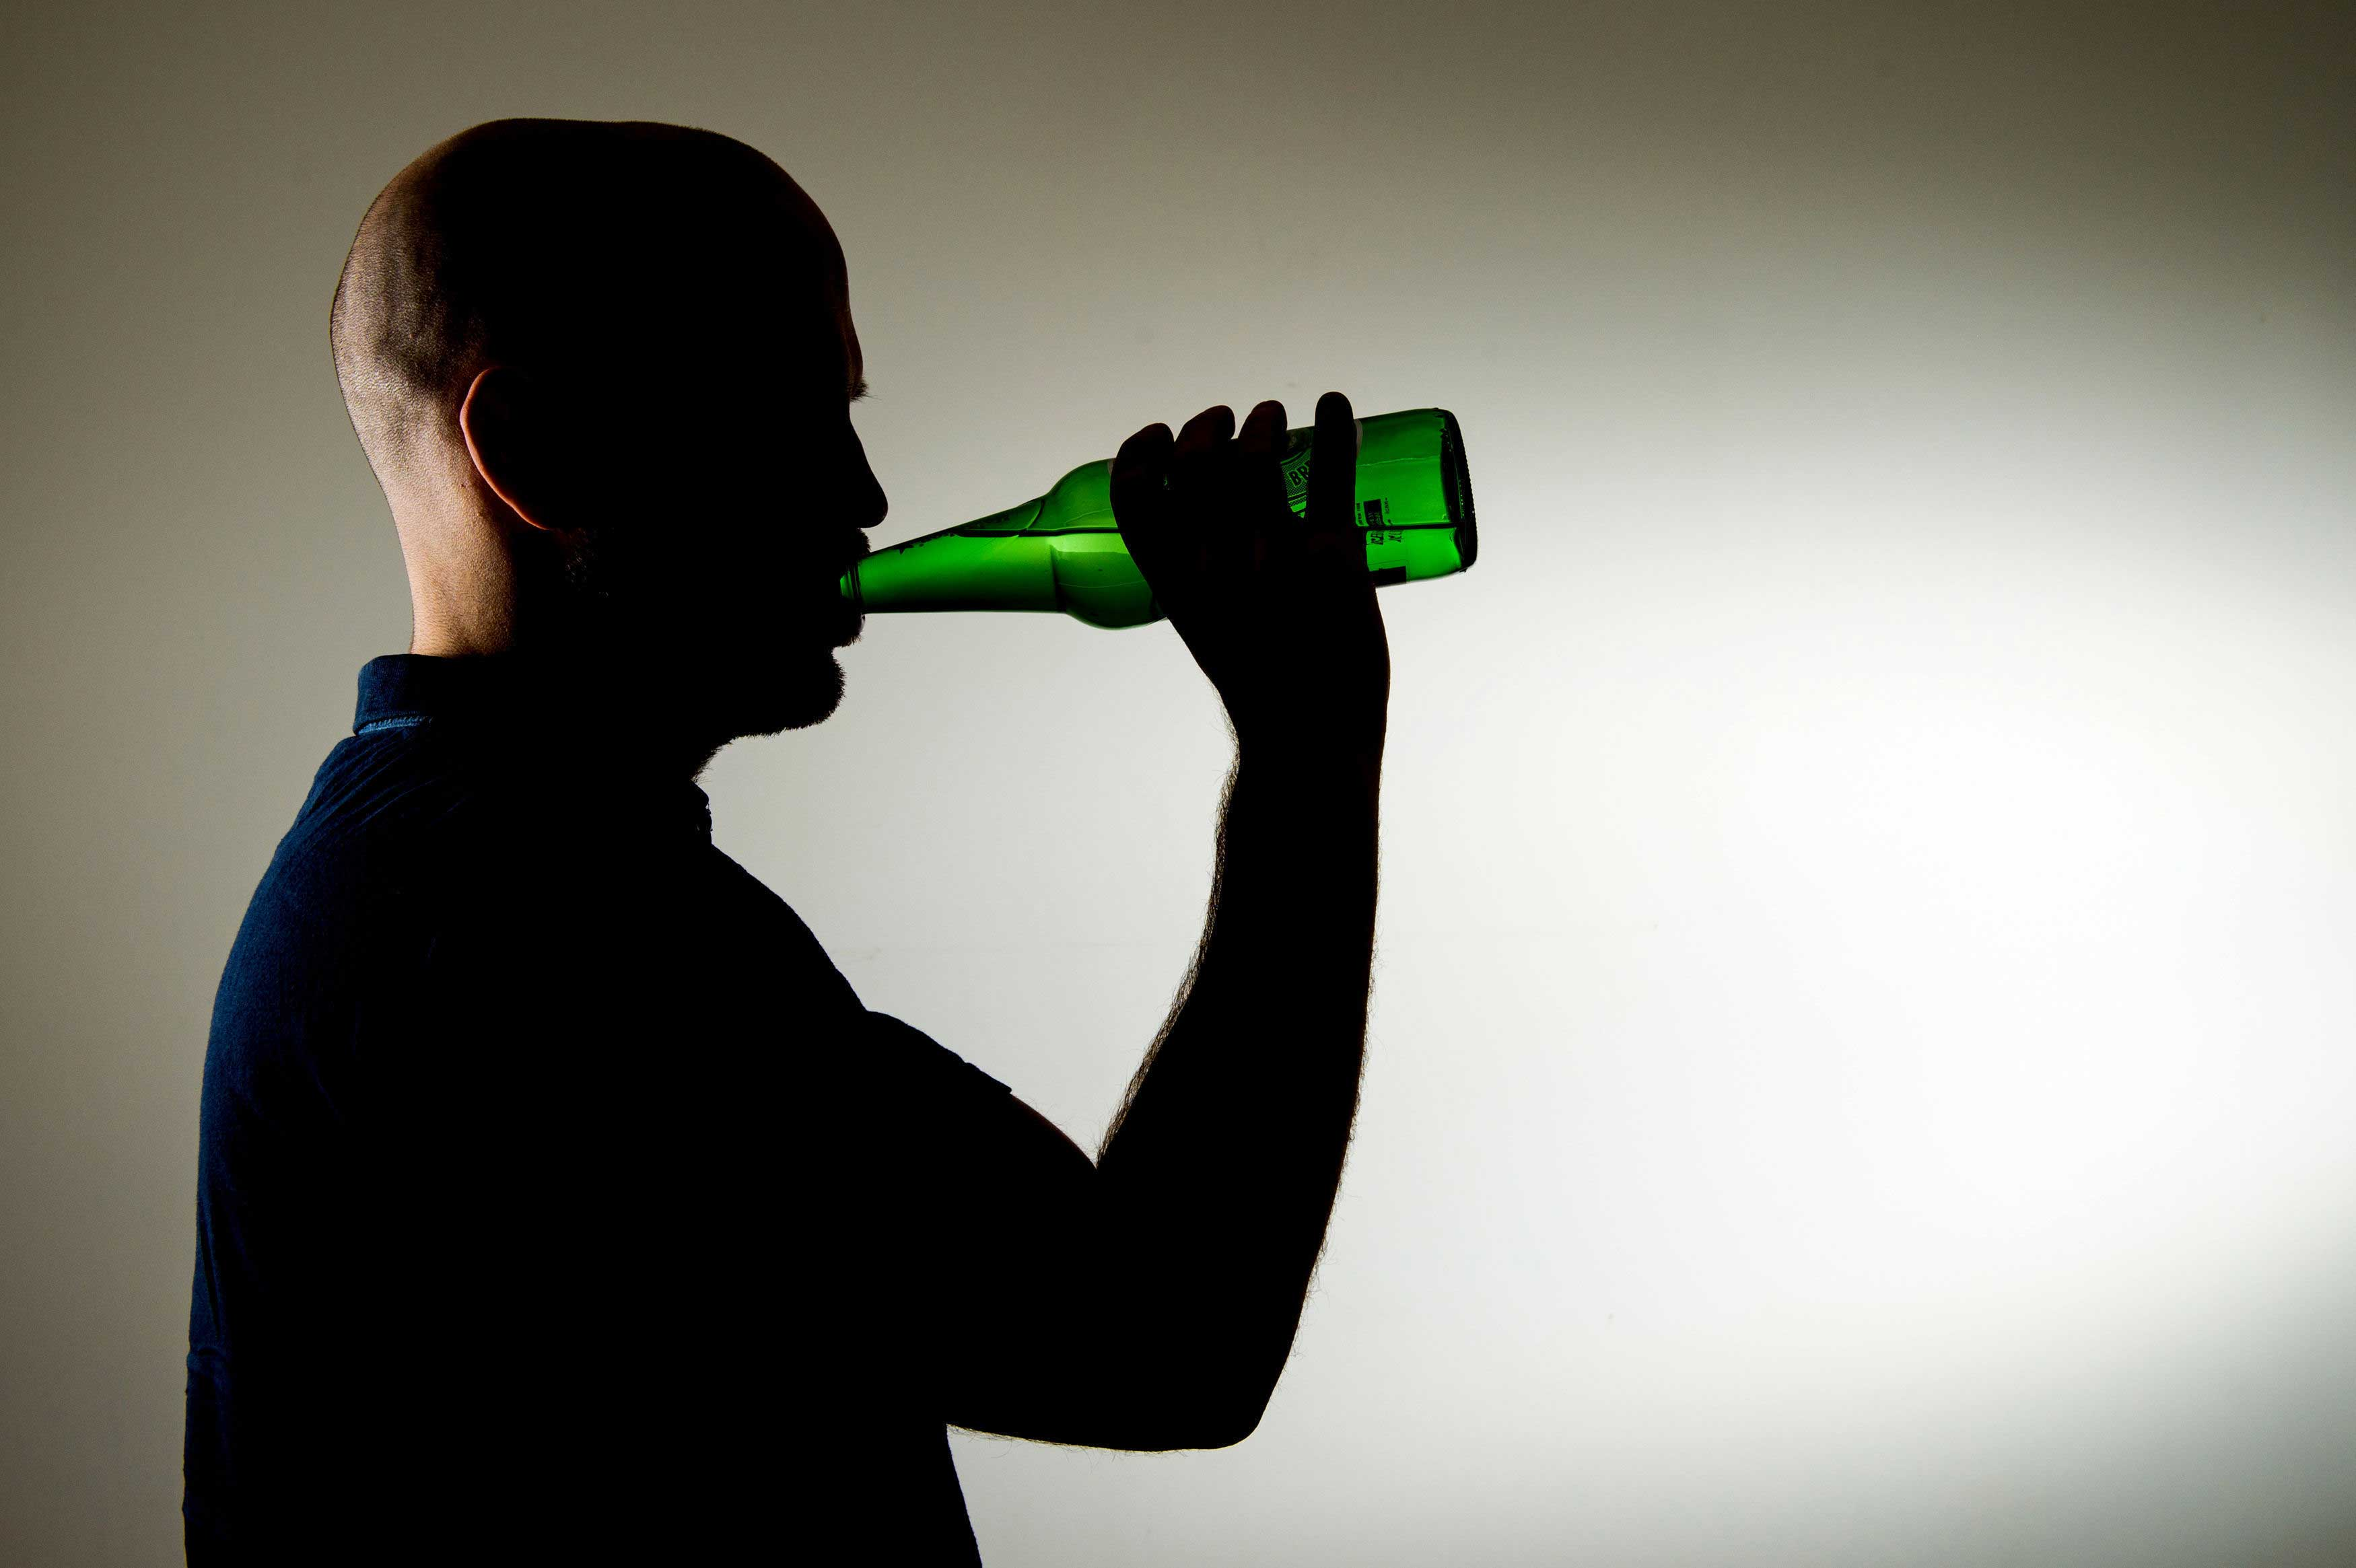 Drinking more alcohol leads to lower life expectancy, research finds